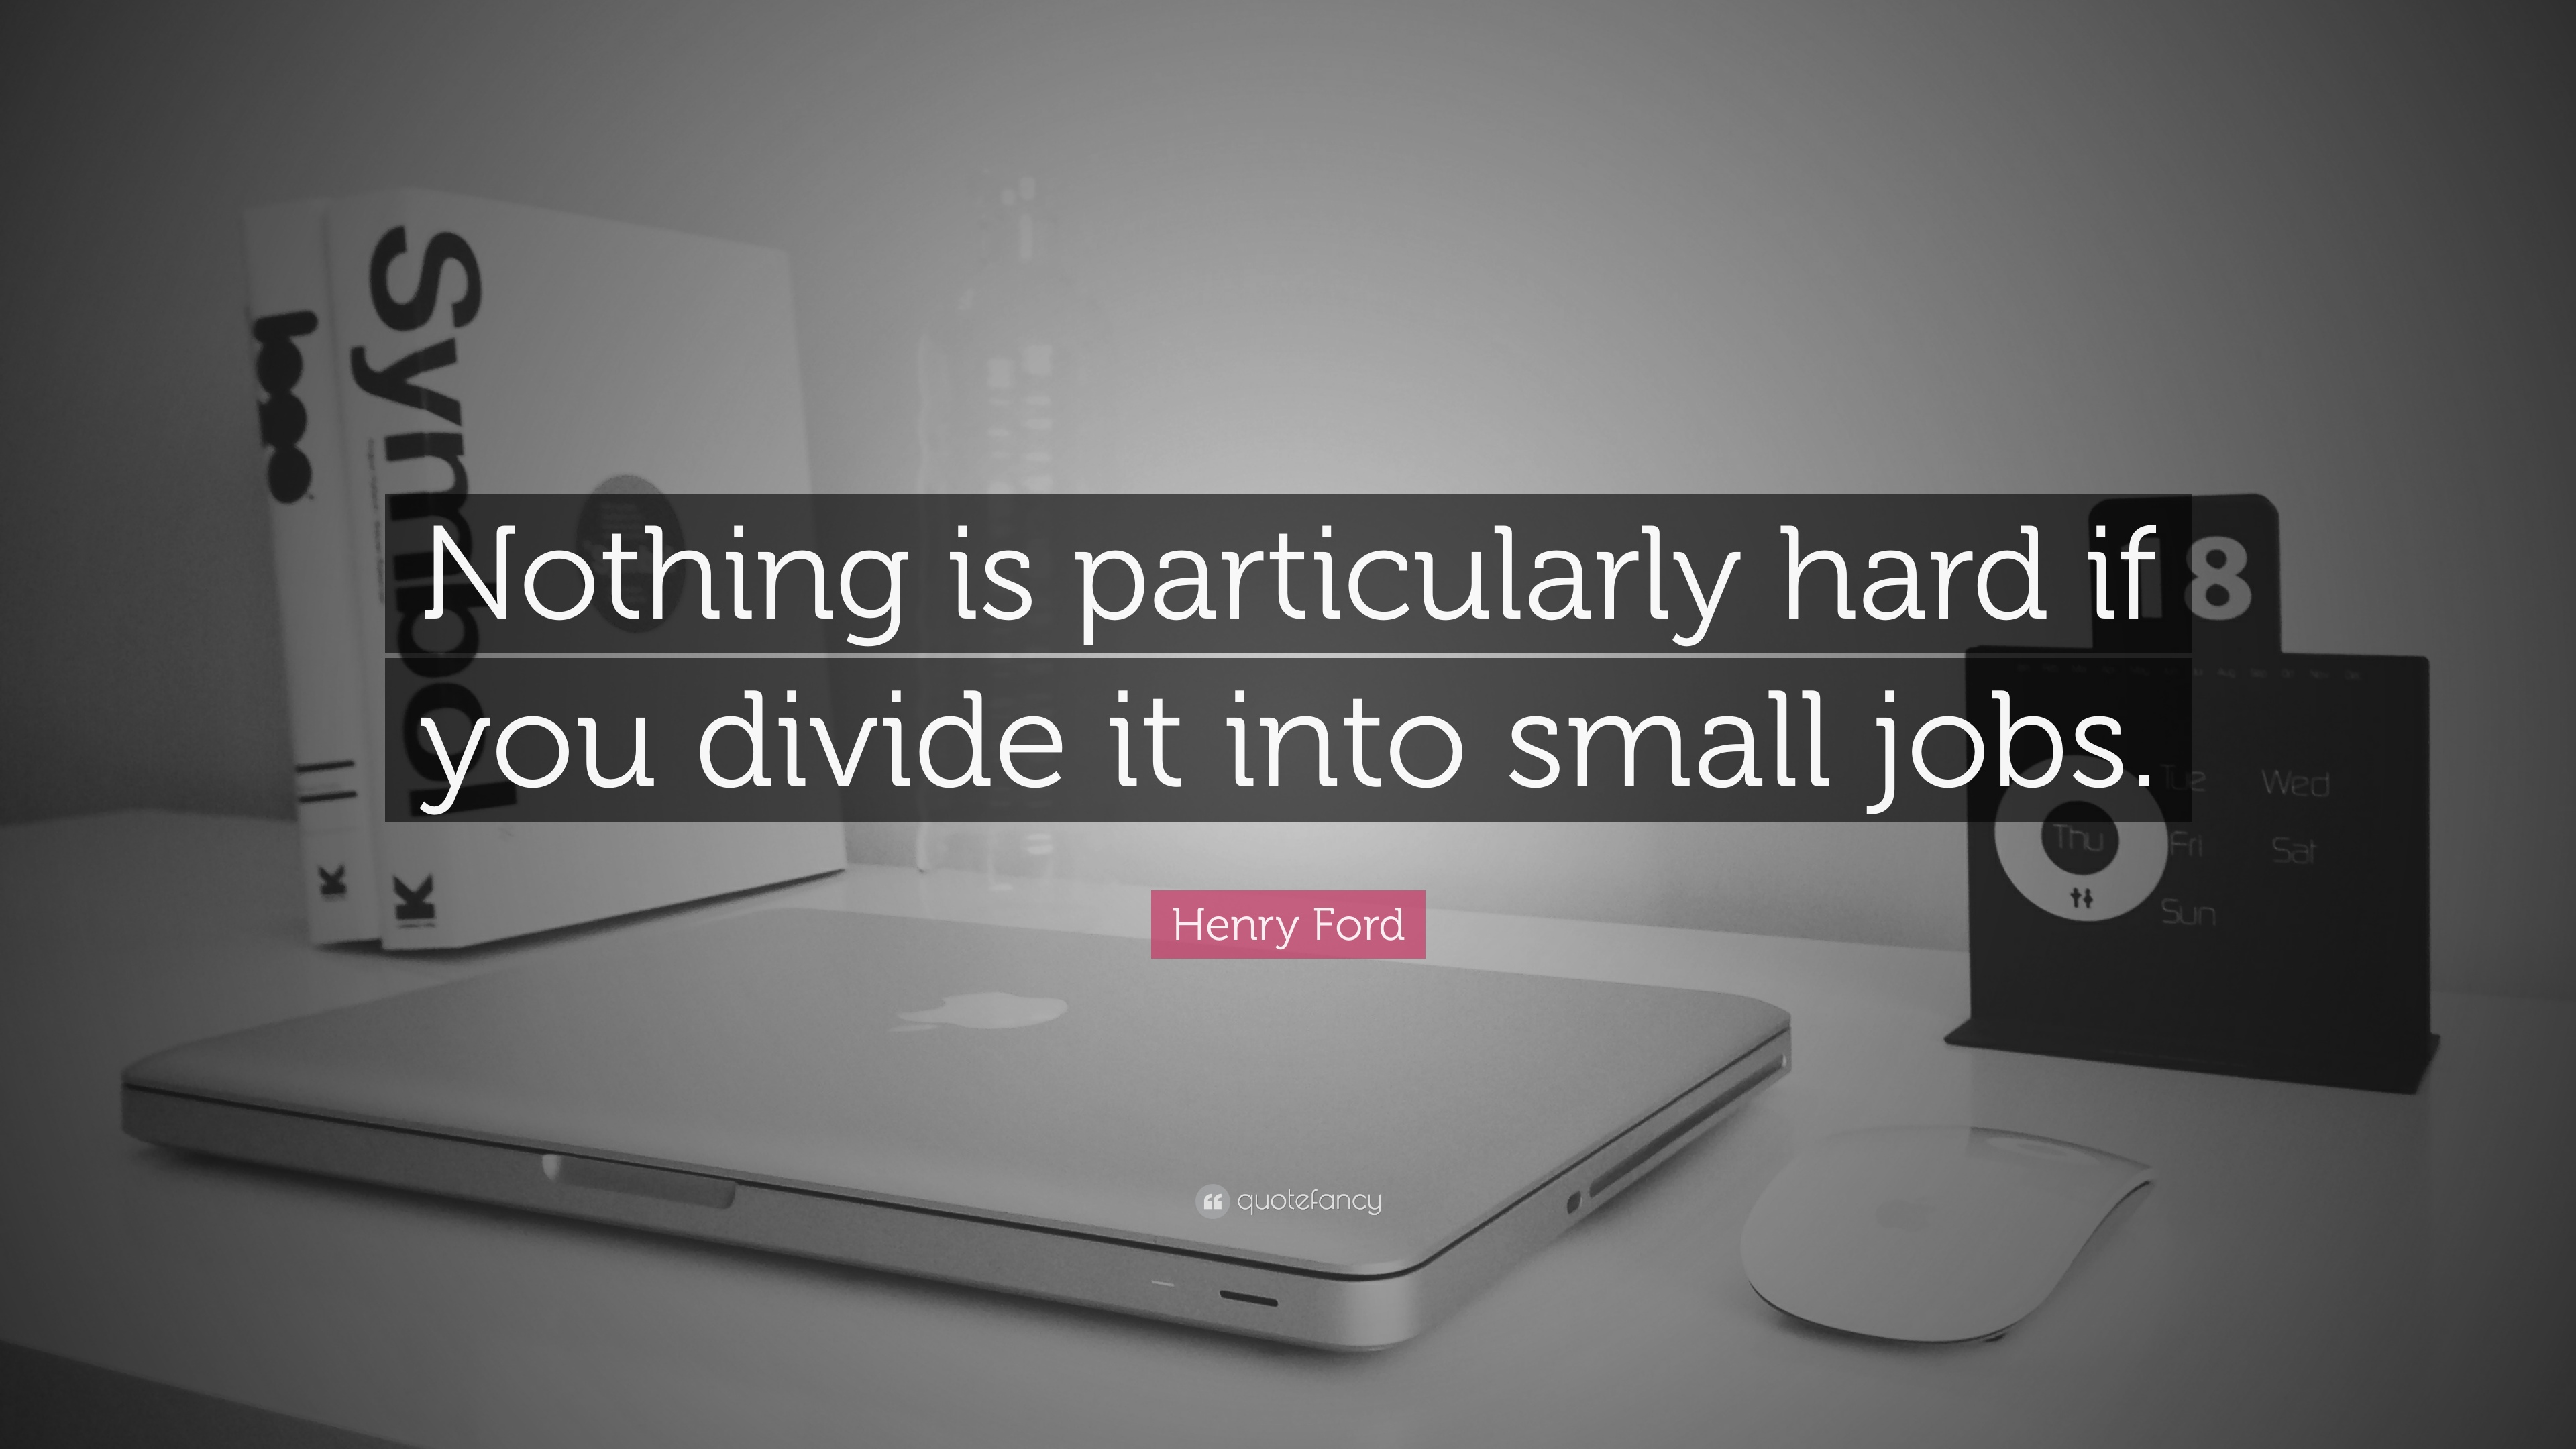 Henry Ford Quotes (100 wallpapers) - Quotefancy